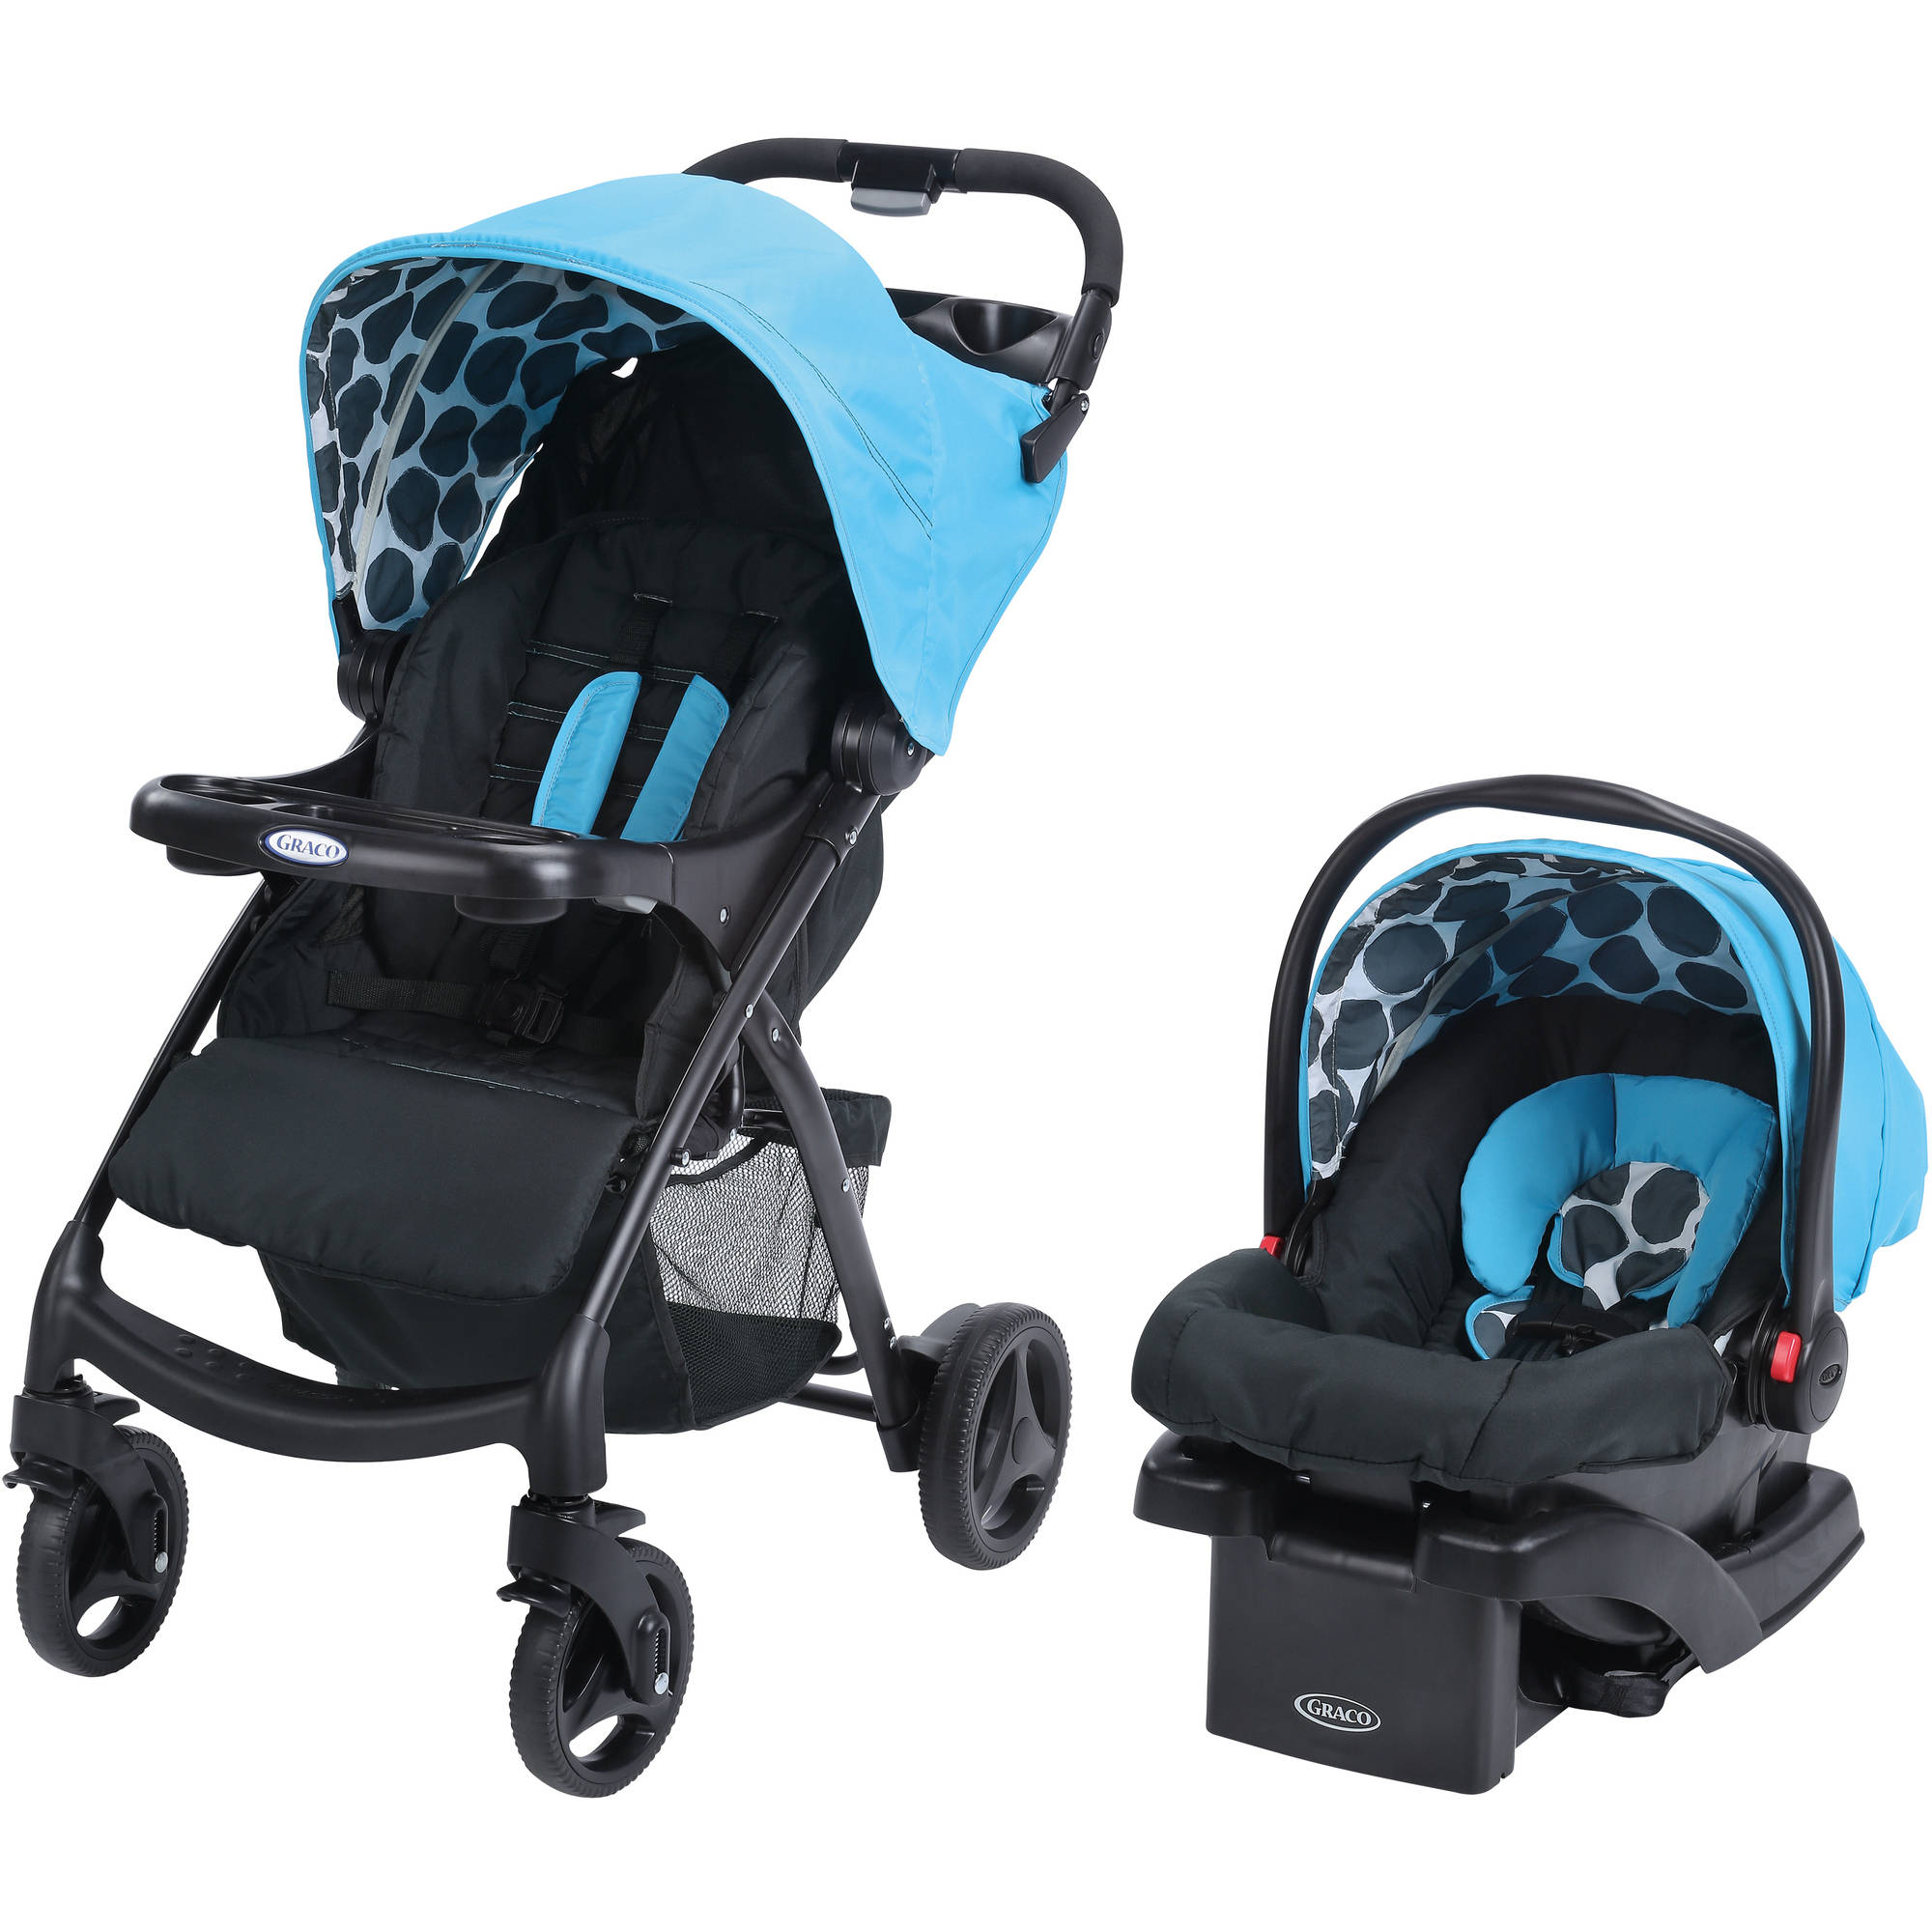 Graco Verb Click Connect Travel System With Snugride Click Connect 30 Infant Car Seat Motif